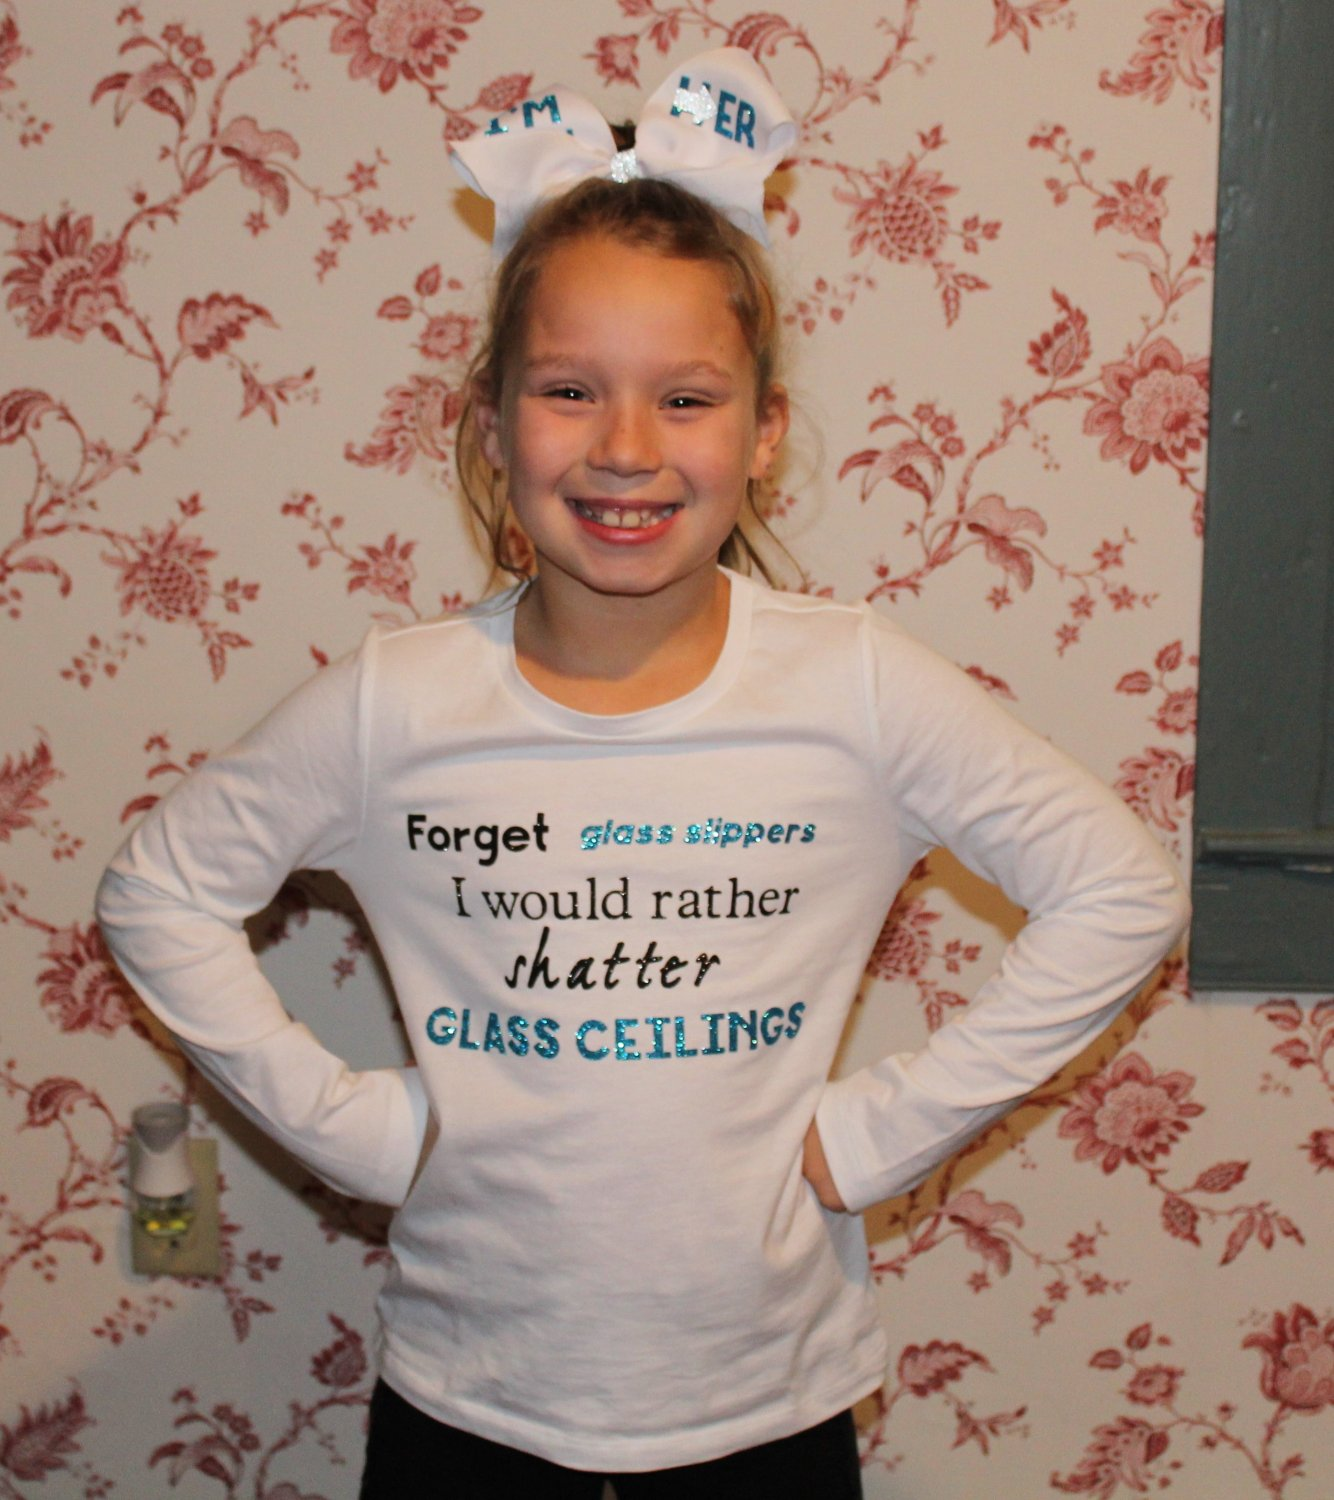 Forget Glass Slippers I'd Rather Shatter Glass Ceilings Shirt - Child Size